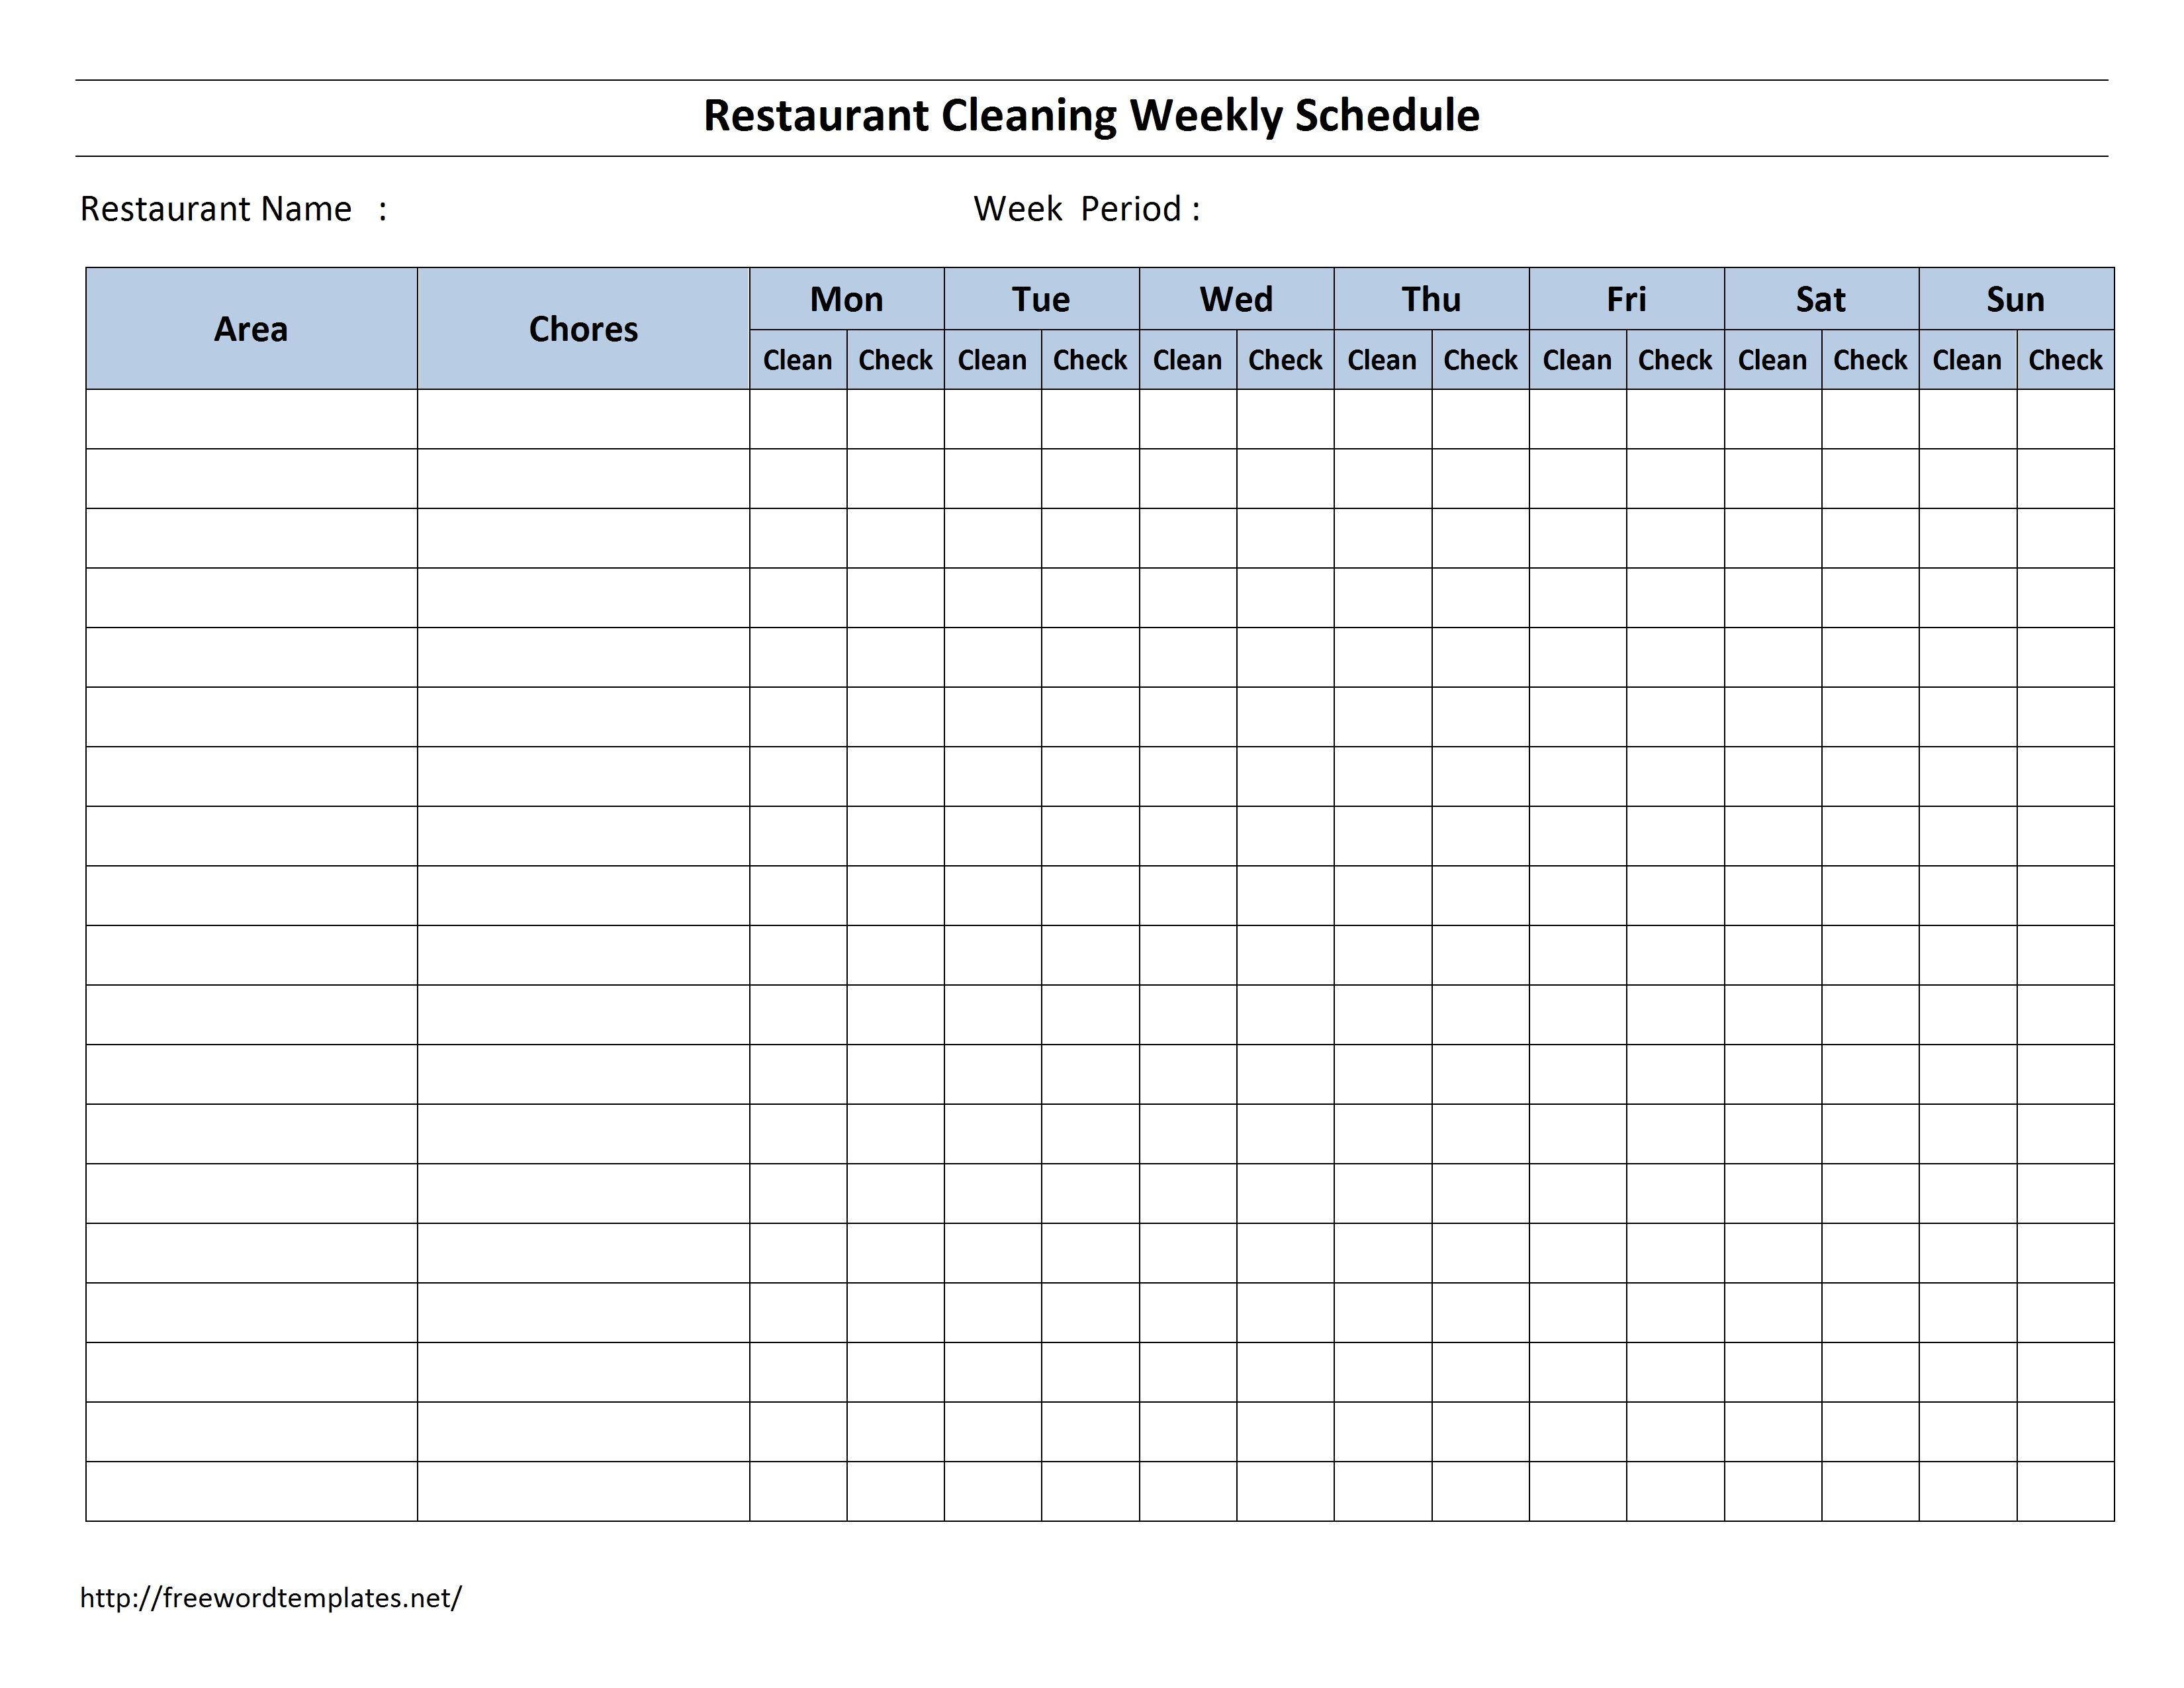 Free Cleaning Schedule Forms | Excel Format And Payroll Areas For with 3 Day Shift Restaurant Template Sheets Excel